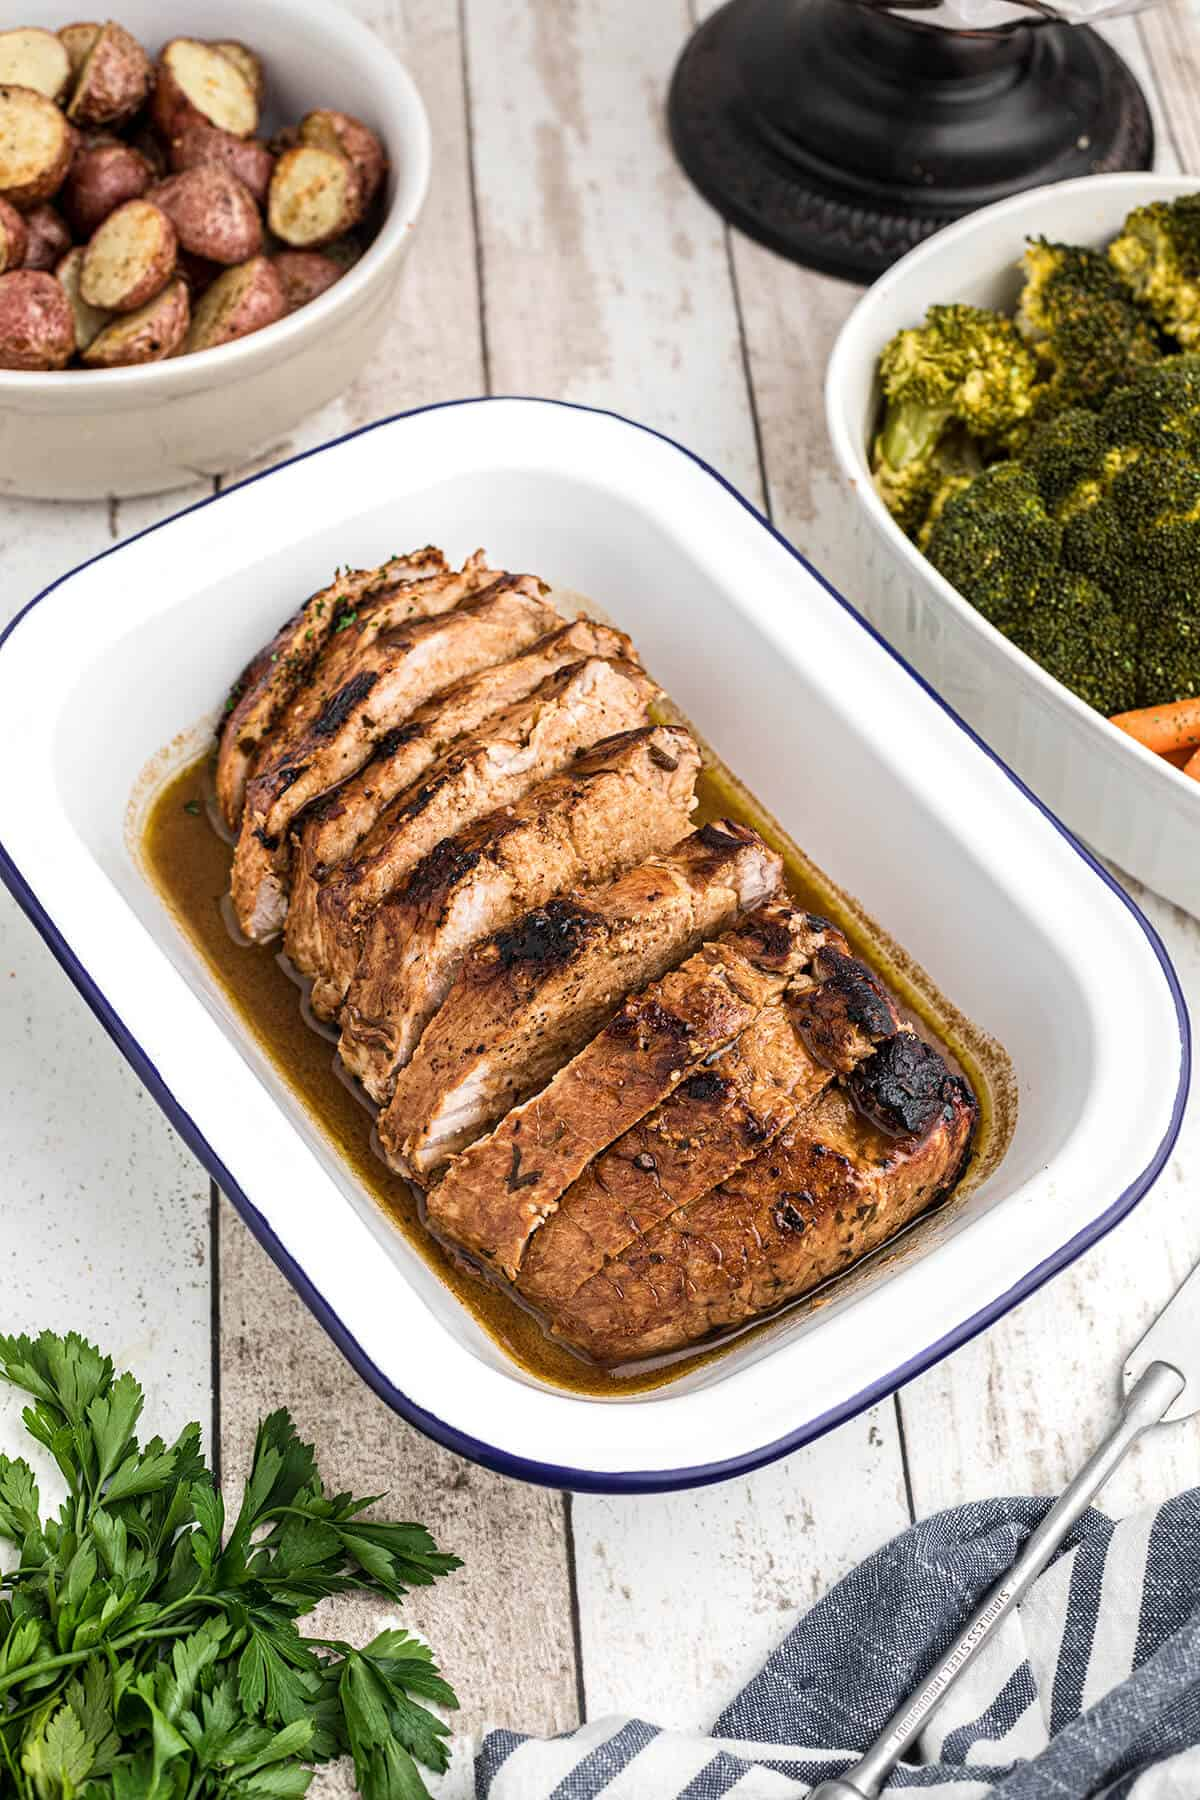 Finished pork loin with sauce in a serving dish.